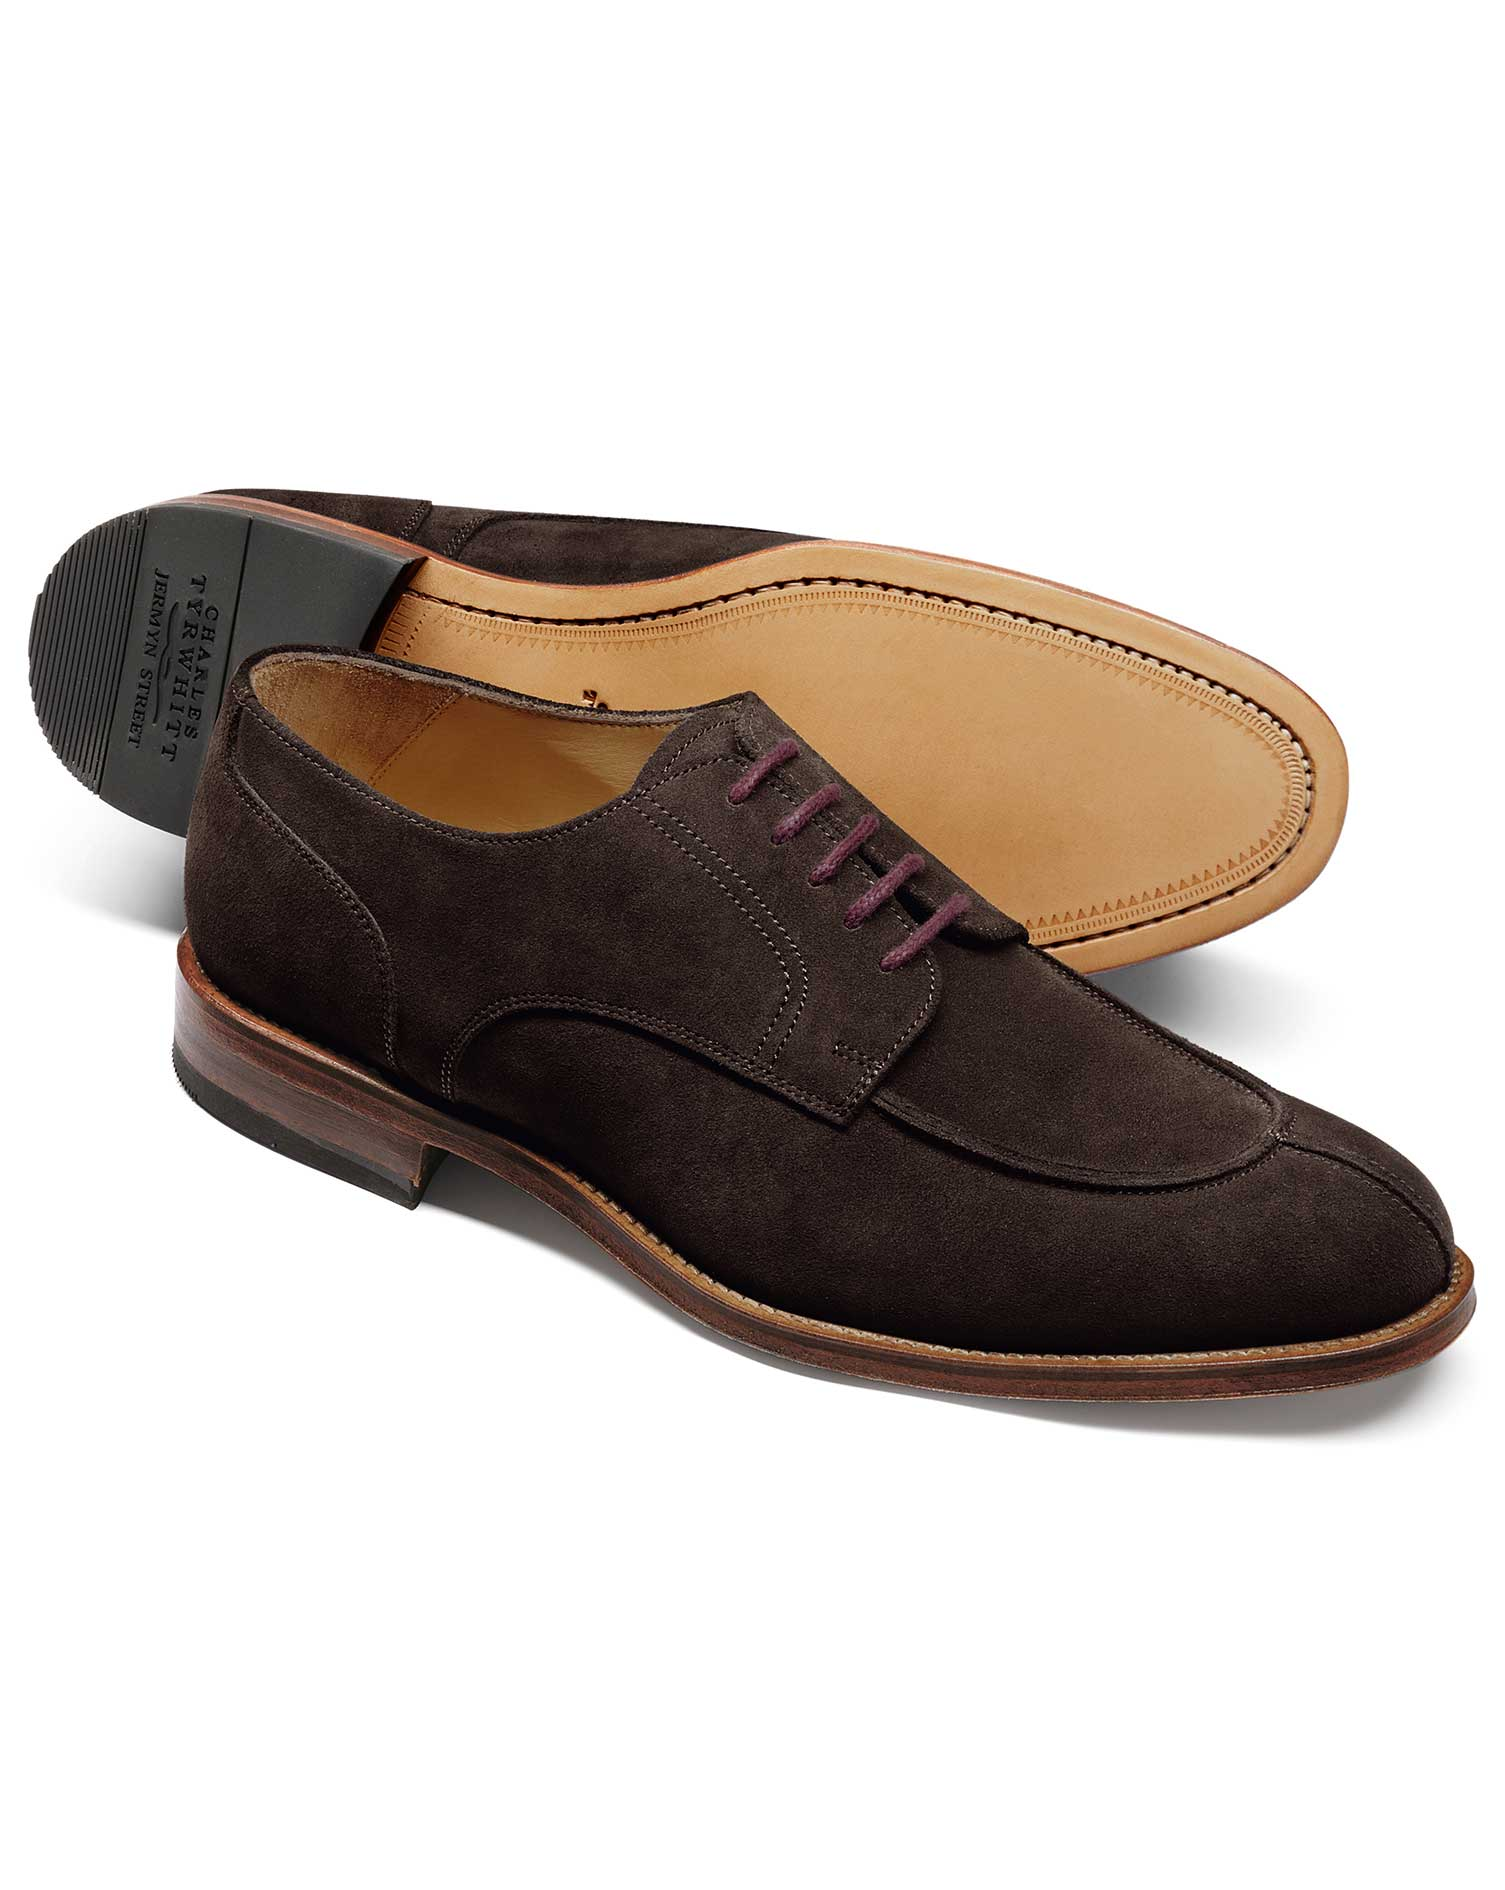 Chocolate Suede Split Toe Derby Shoe Size 6 R by Charles Tyrwhitt